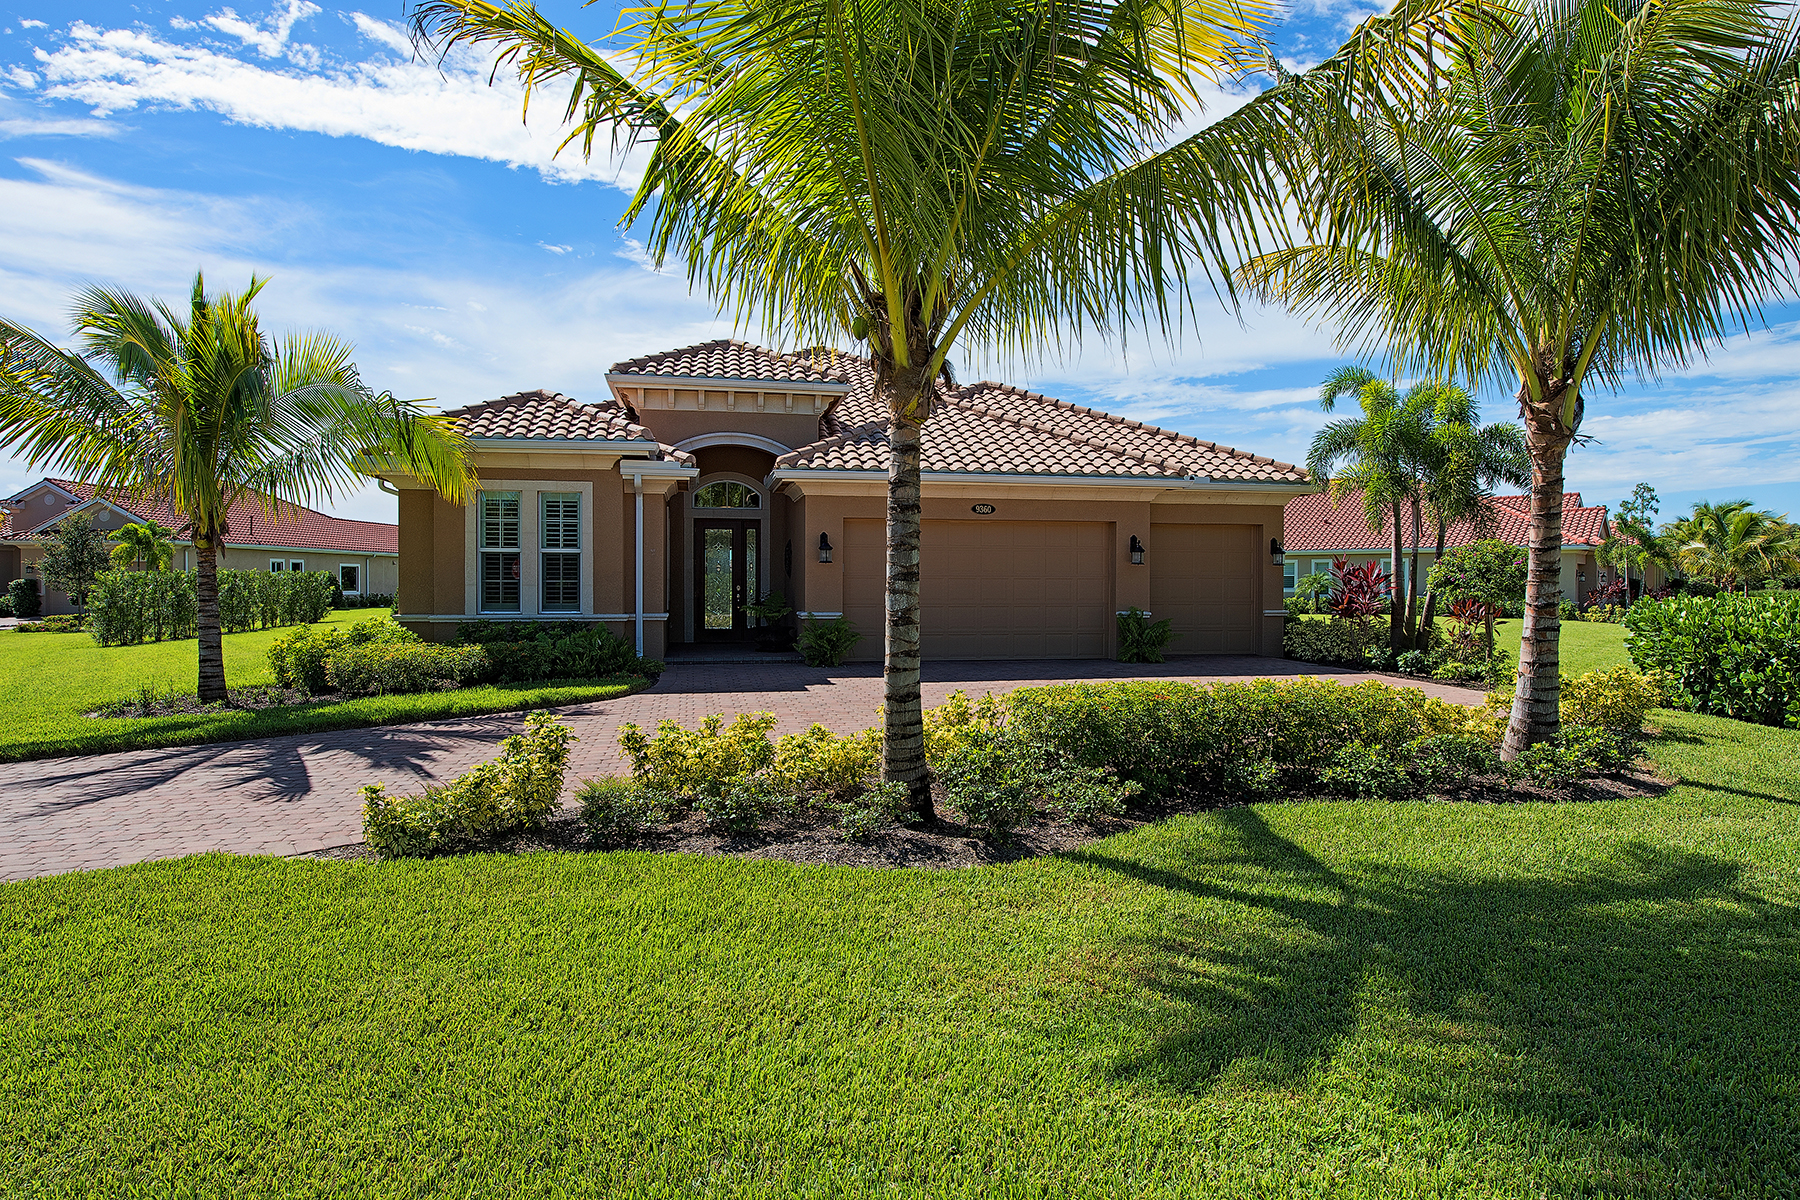 Single Family Home for Sale at FIDDLERS CREEK 9360 Vadala Bend Ct, Naples, Florida 34114 United States